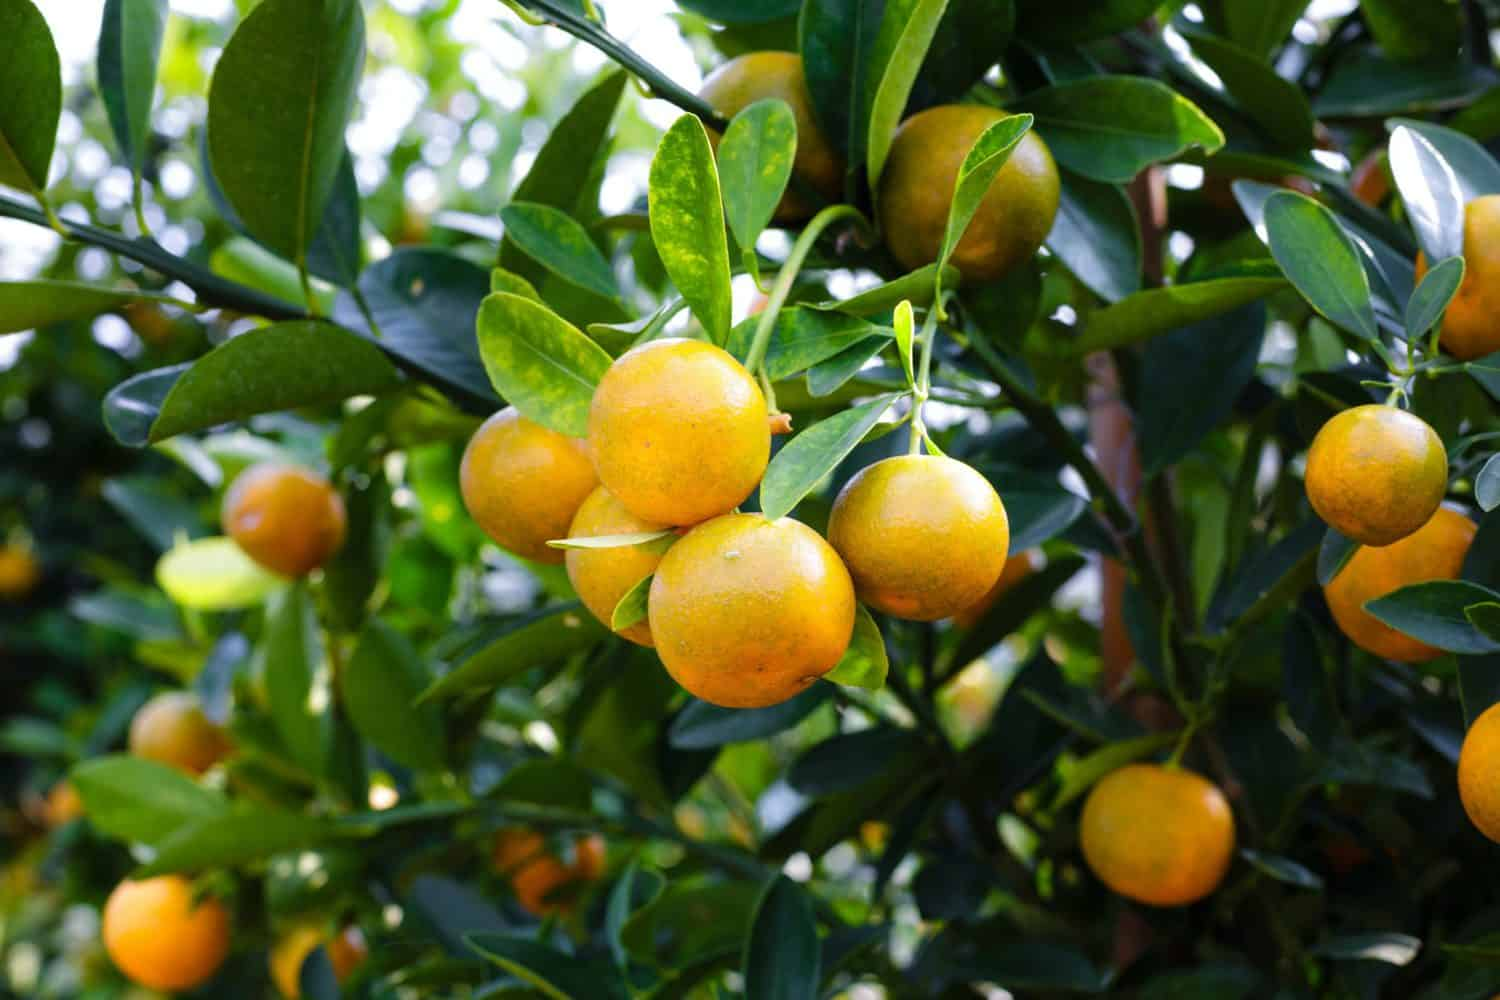 While local citrus exporters are gearing up to ship its first citrus consignments to the Philippines, the industry back home have predicted a lower export volume for 2021. Photo: Supplied/Food For Mzansi